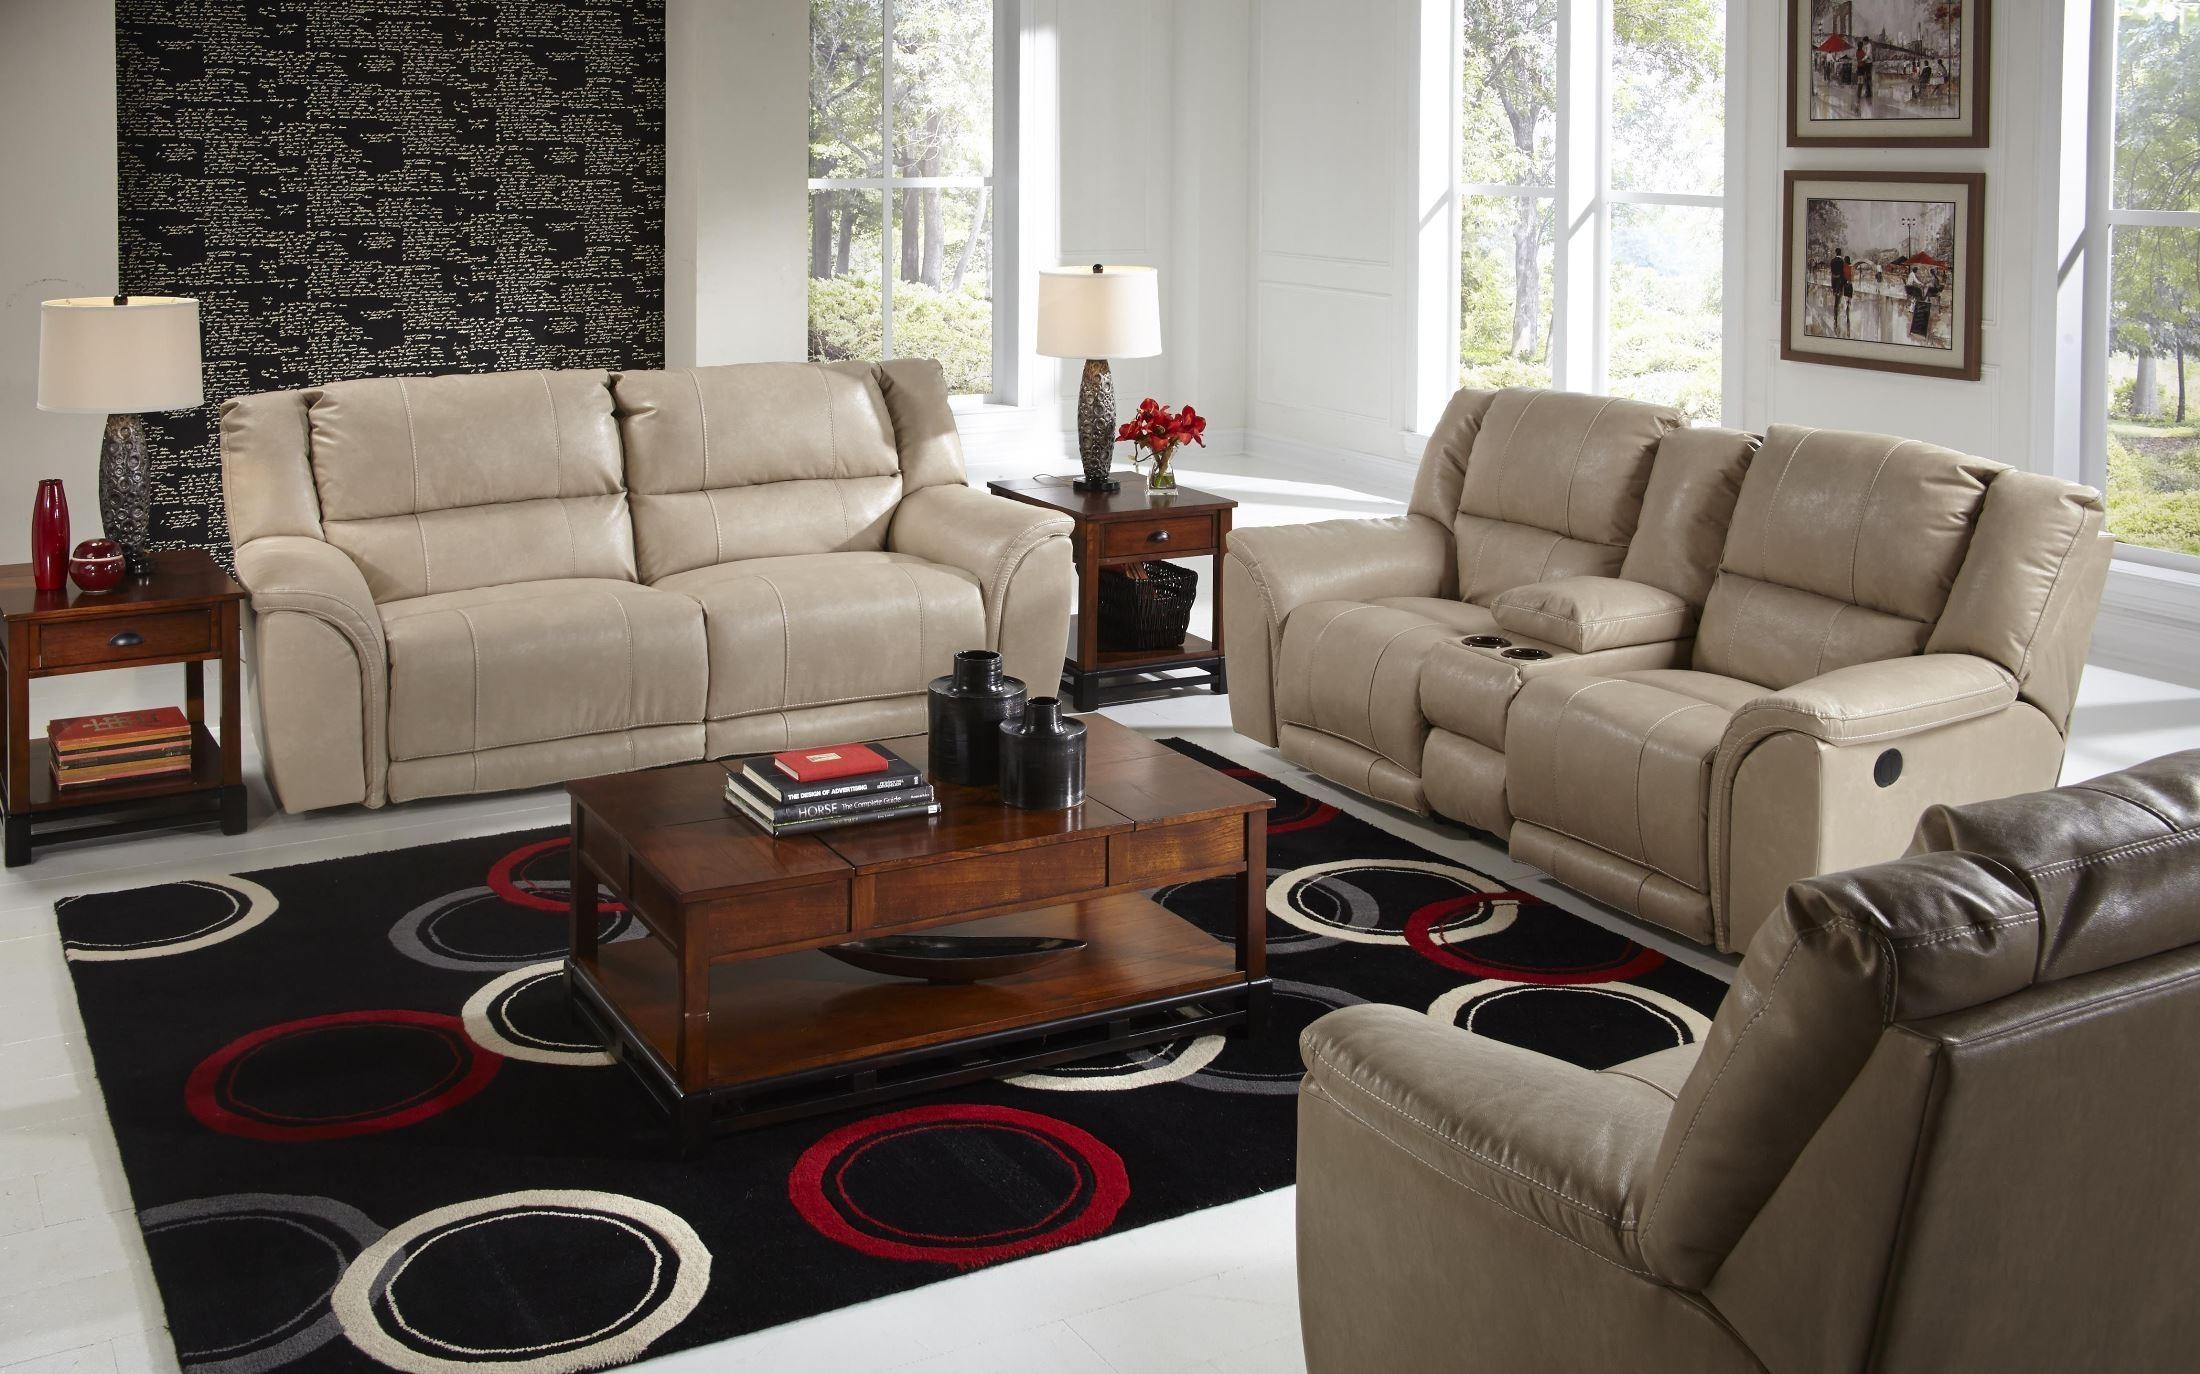 Carmine Pebble Power Reclining Living Room Set From Catnapper Intended For Catnapper Recliner Sofas (View 6 of 20)